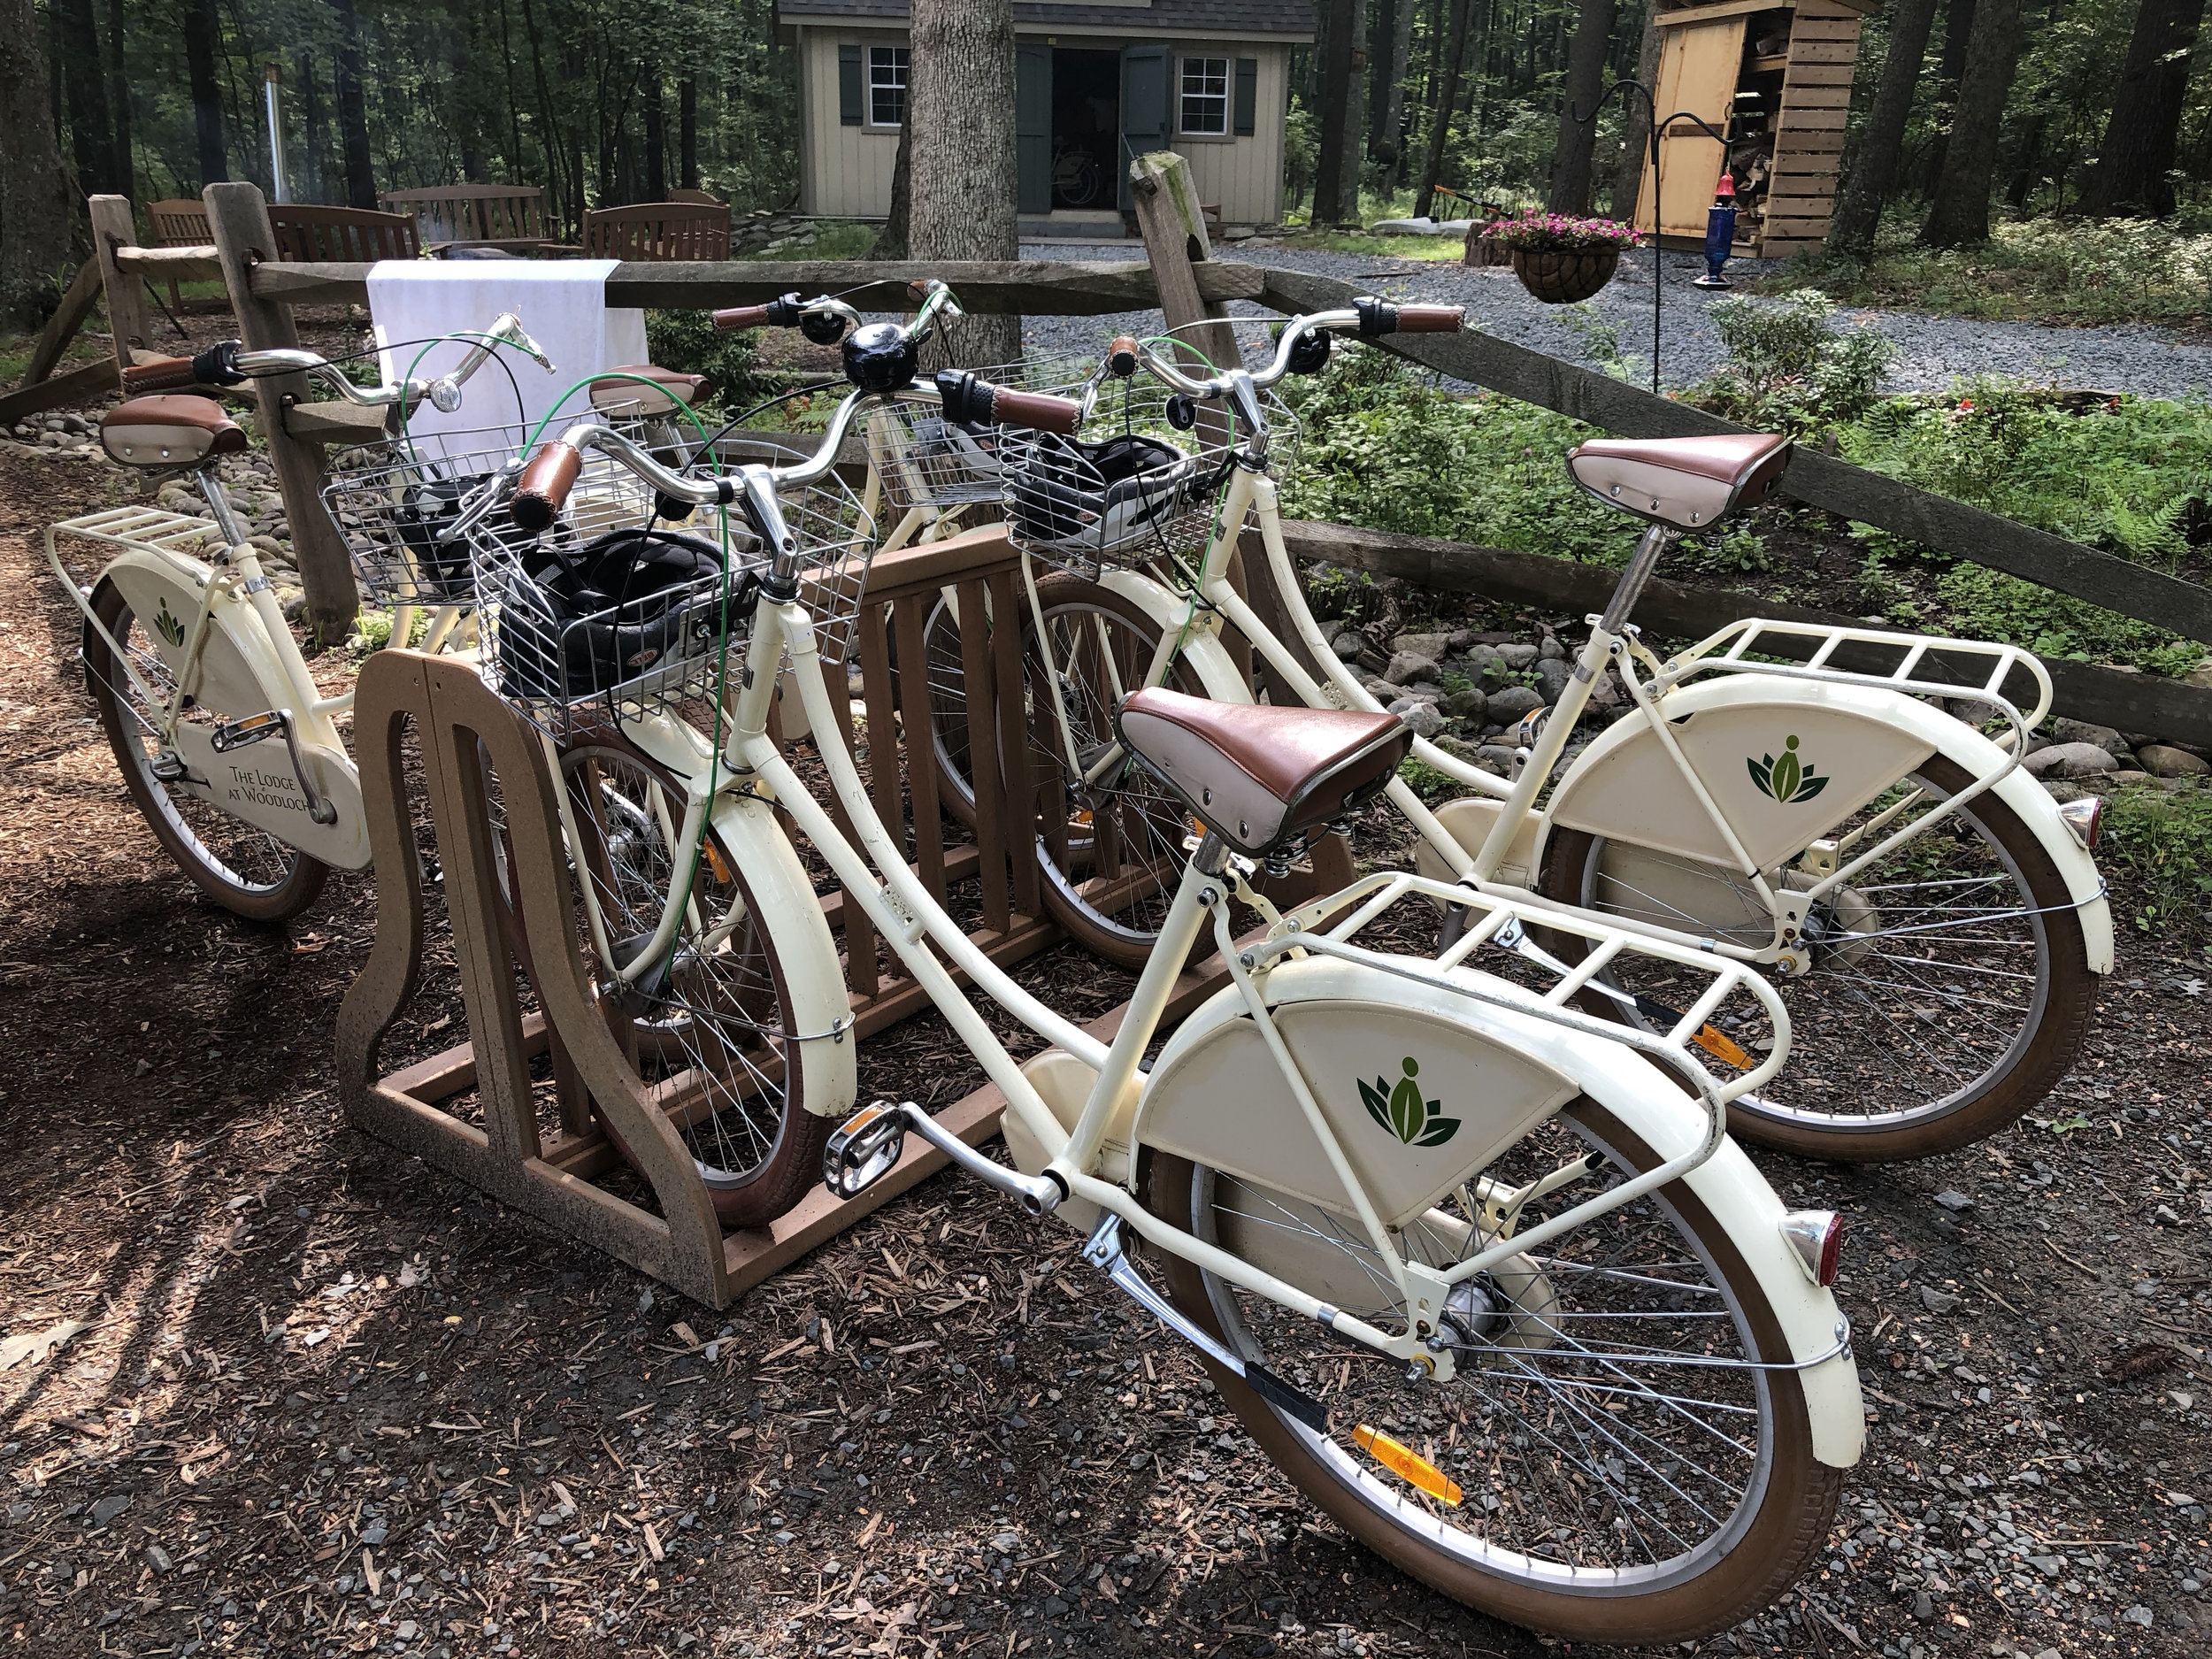 Wanderlust-Travel-blog-Woodloch-Lodge-spa-retreat-wellness-bikes